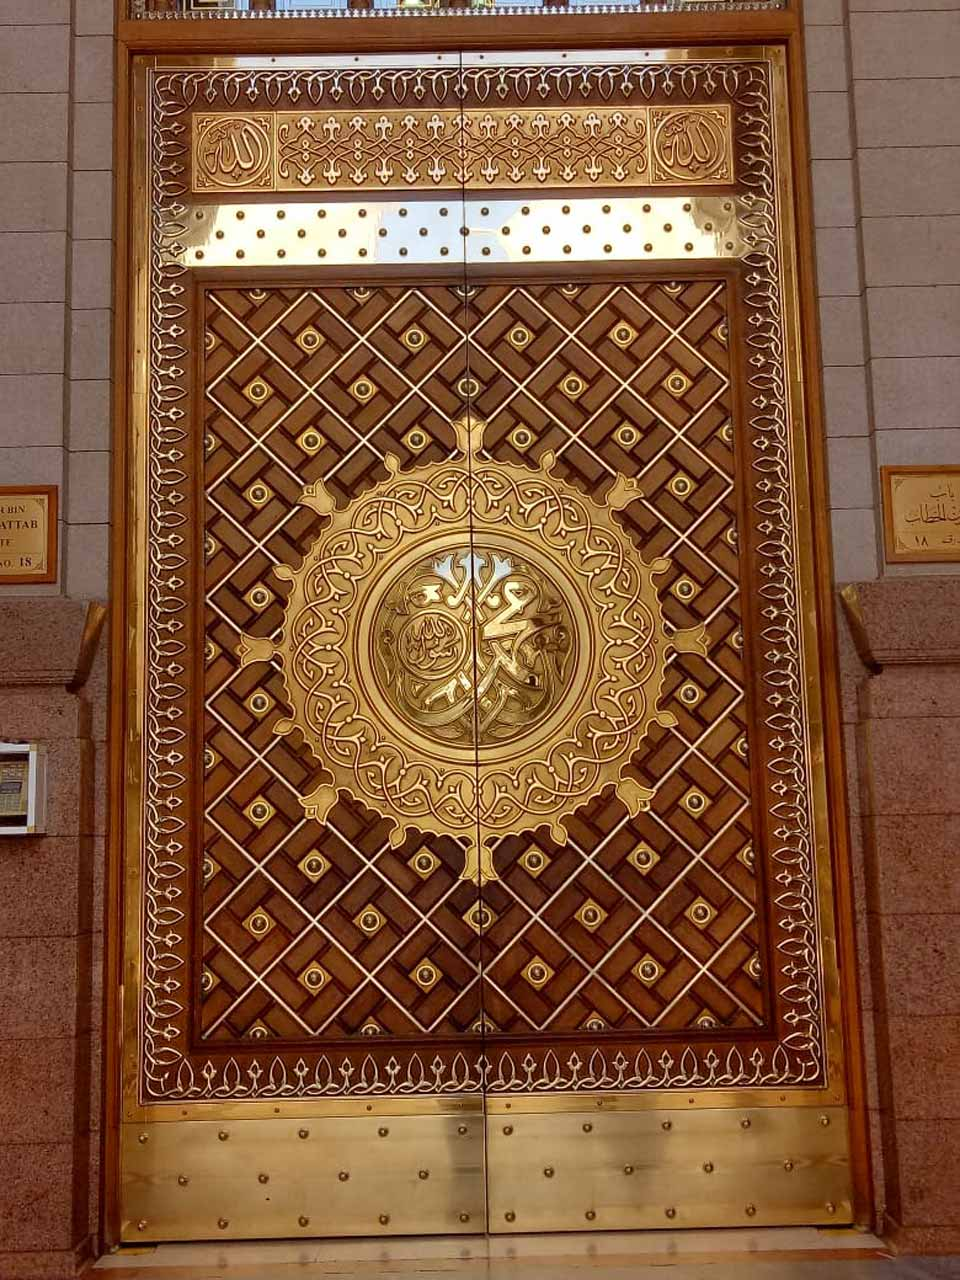 The gate to enter the Masjid-e-Nabwi